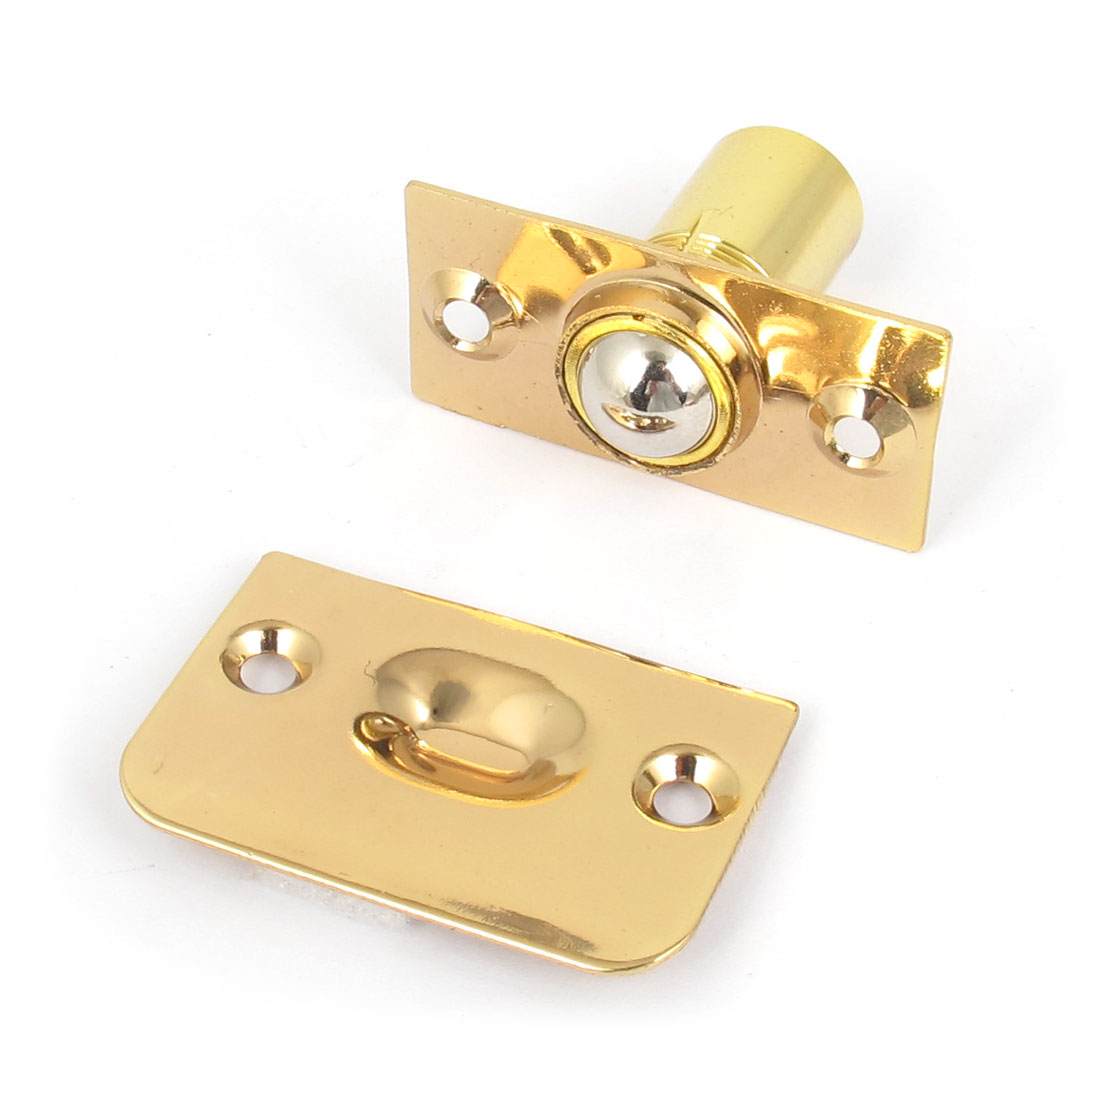 Hardware Closet Door Ball Catch Latch Catcher Gold Tone